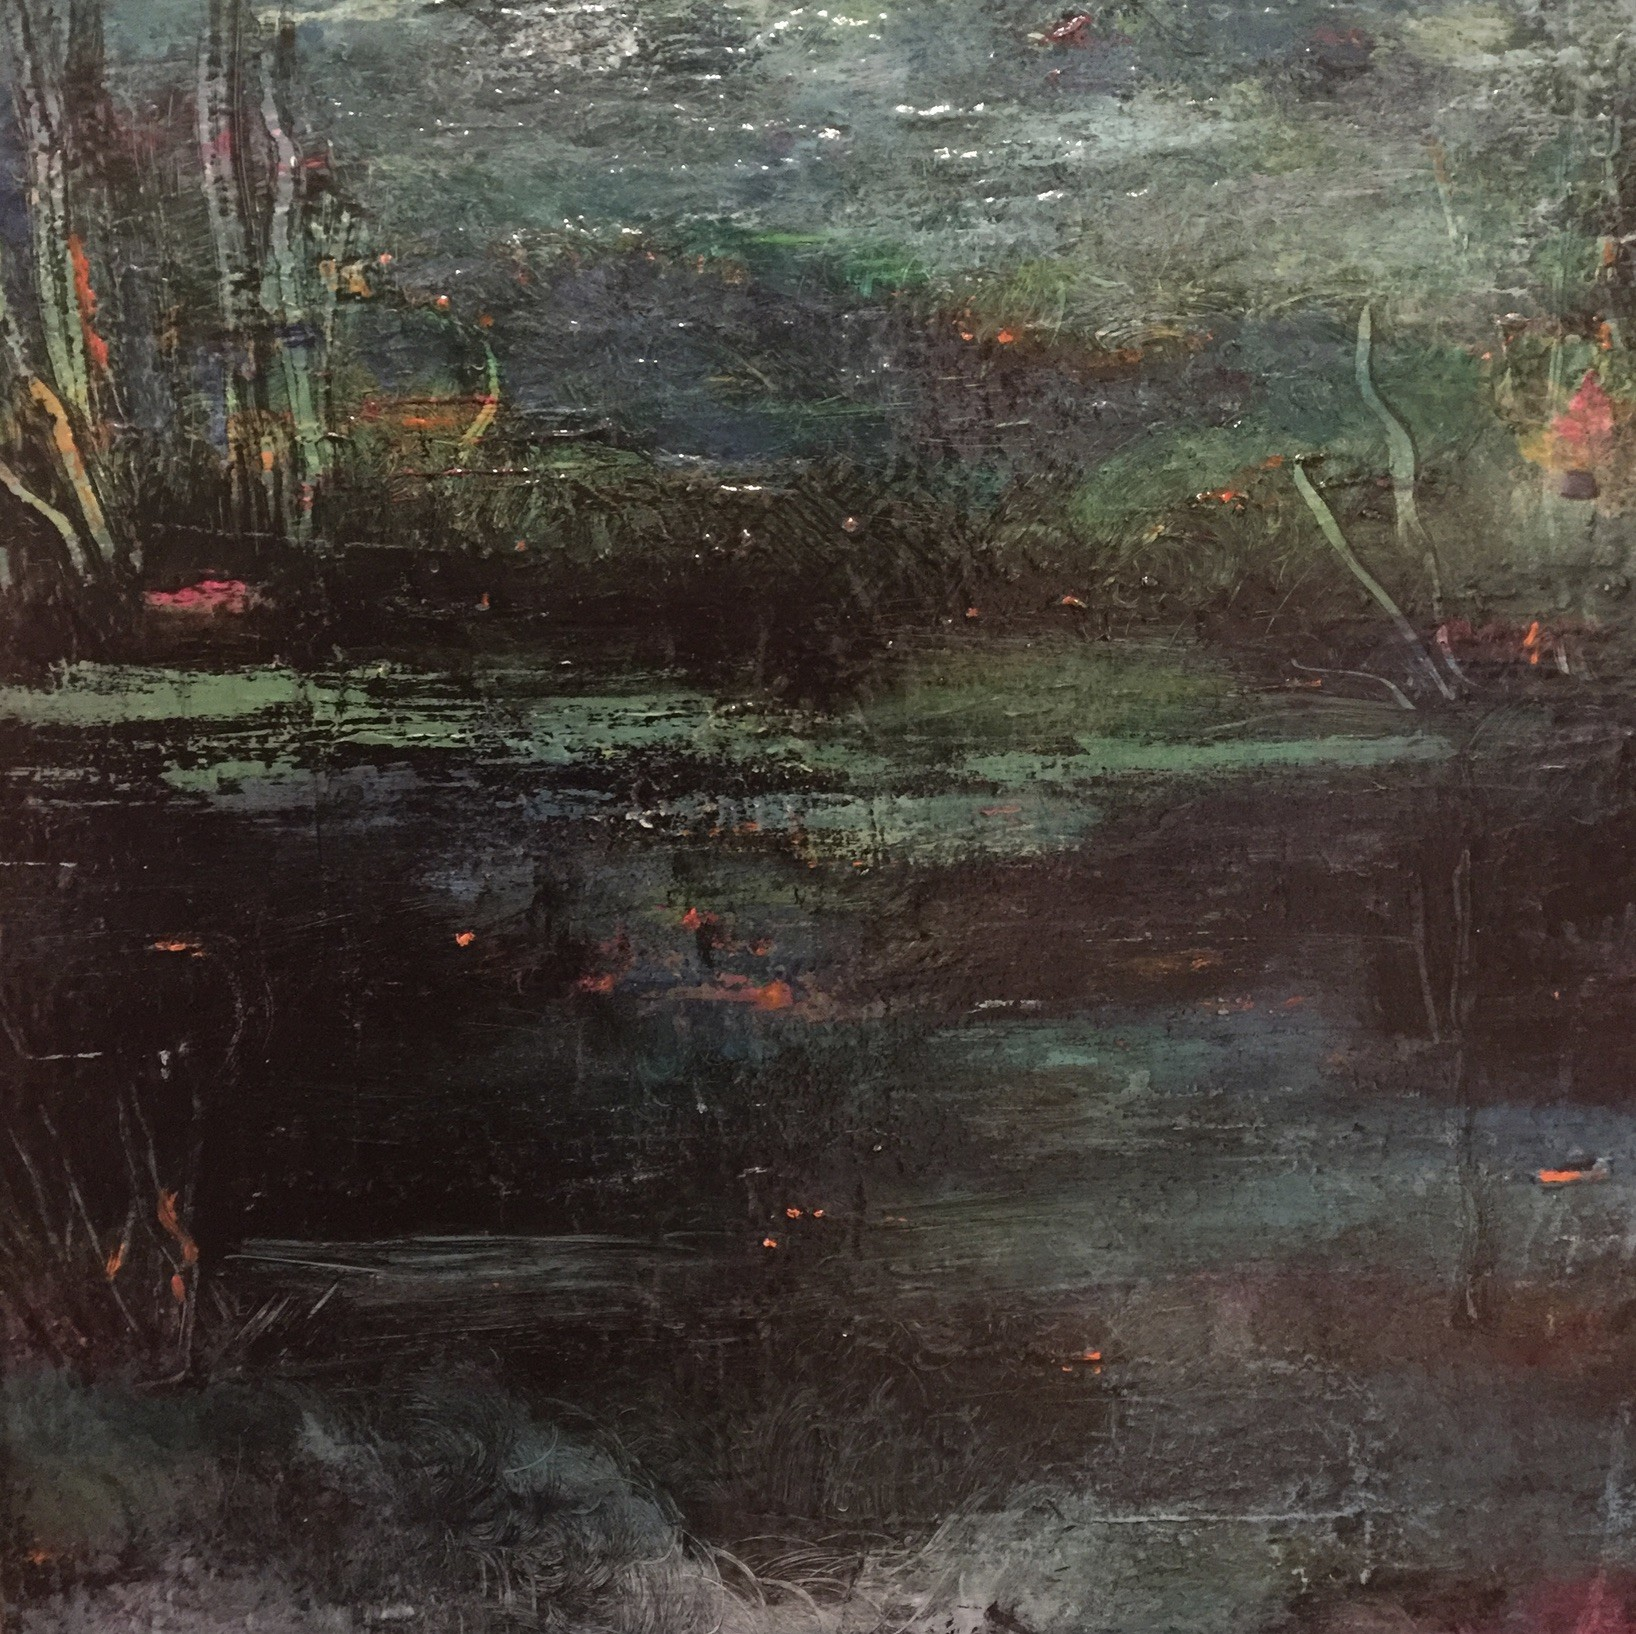 <span class=&#34;link fancybox-details-link&#34;><a href=&#34;/artists/38-linda-franklin/works/2651-linda-franklin-in-the-still-of-the-night/&#34;>View Detail Page</a></span><div class=&#34;artist&#34;><strong>Linda Franklin</strong></div> <div class=&#34;title&#34;><em>In The Still Of The Night </em></div> <div class=&#34;medium&#34;>Mixed Media on Canvas <br /> </div> <div class=&#34;dimensions&#34;>46 x 46 cm</div><div class=&#34;price&#34;>£850.00</div><div class=&#34;copyright_line&#34;>Copyright The Artist</div>